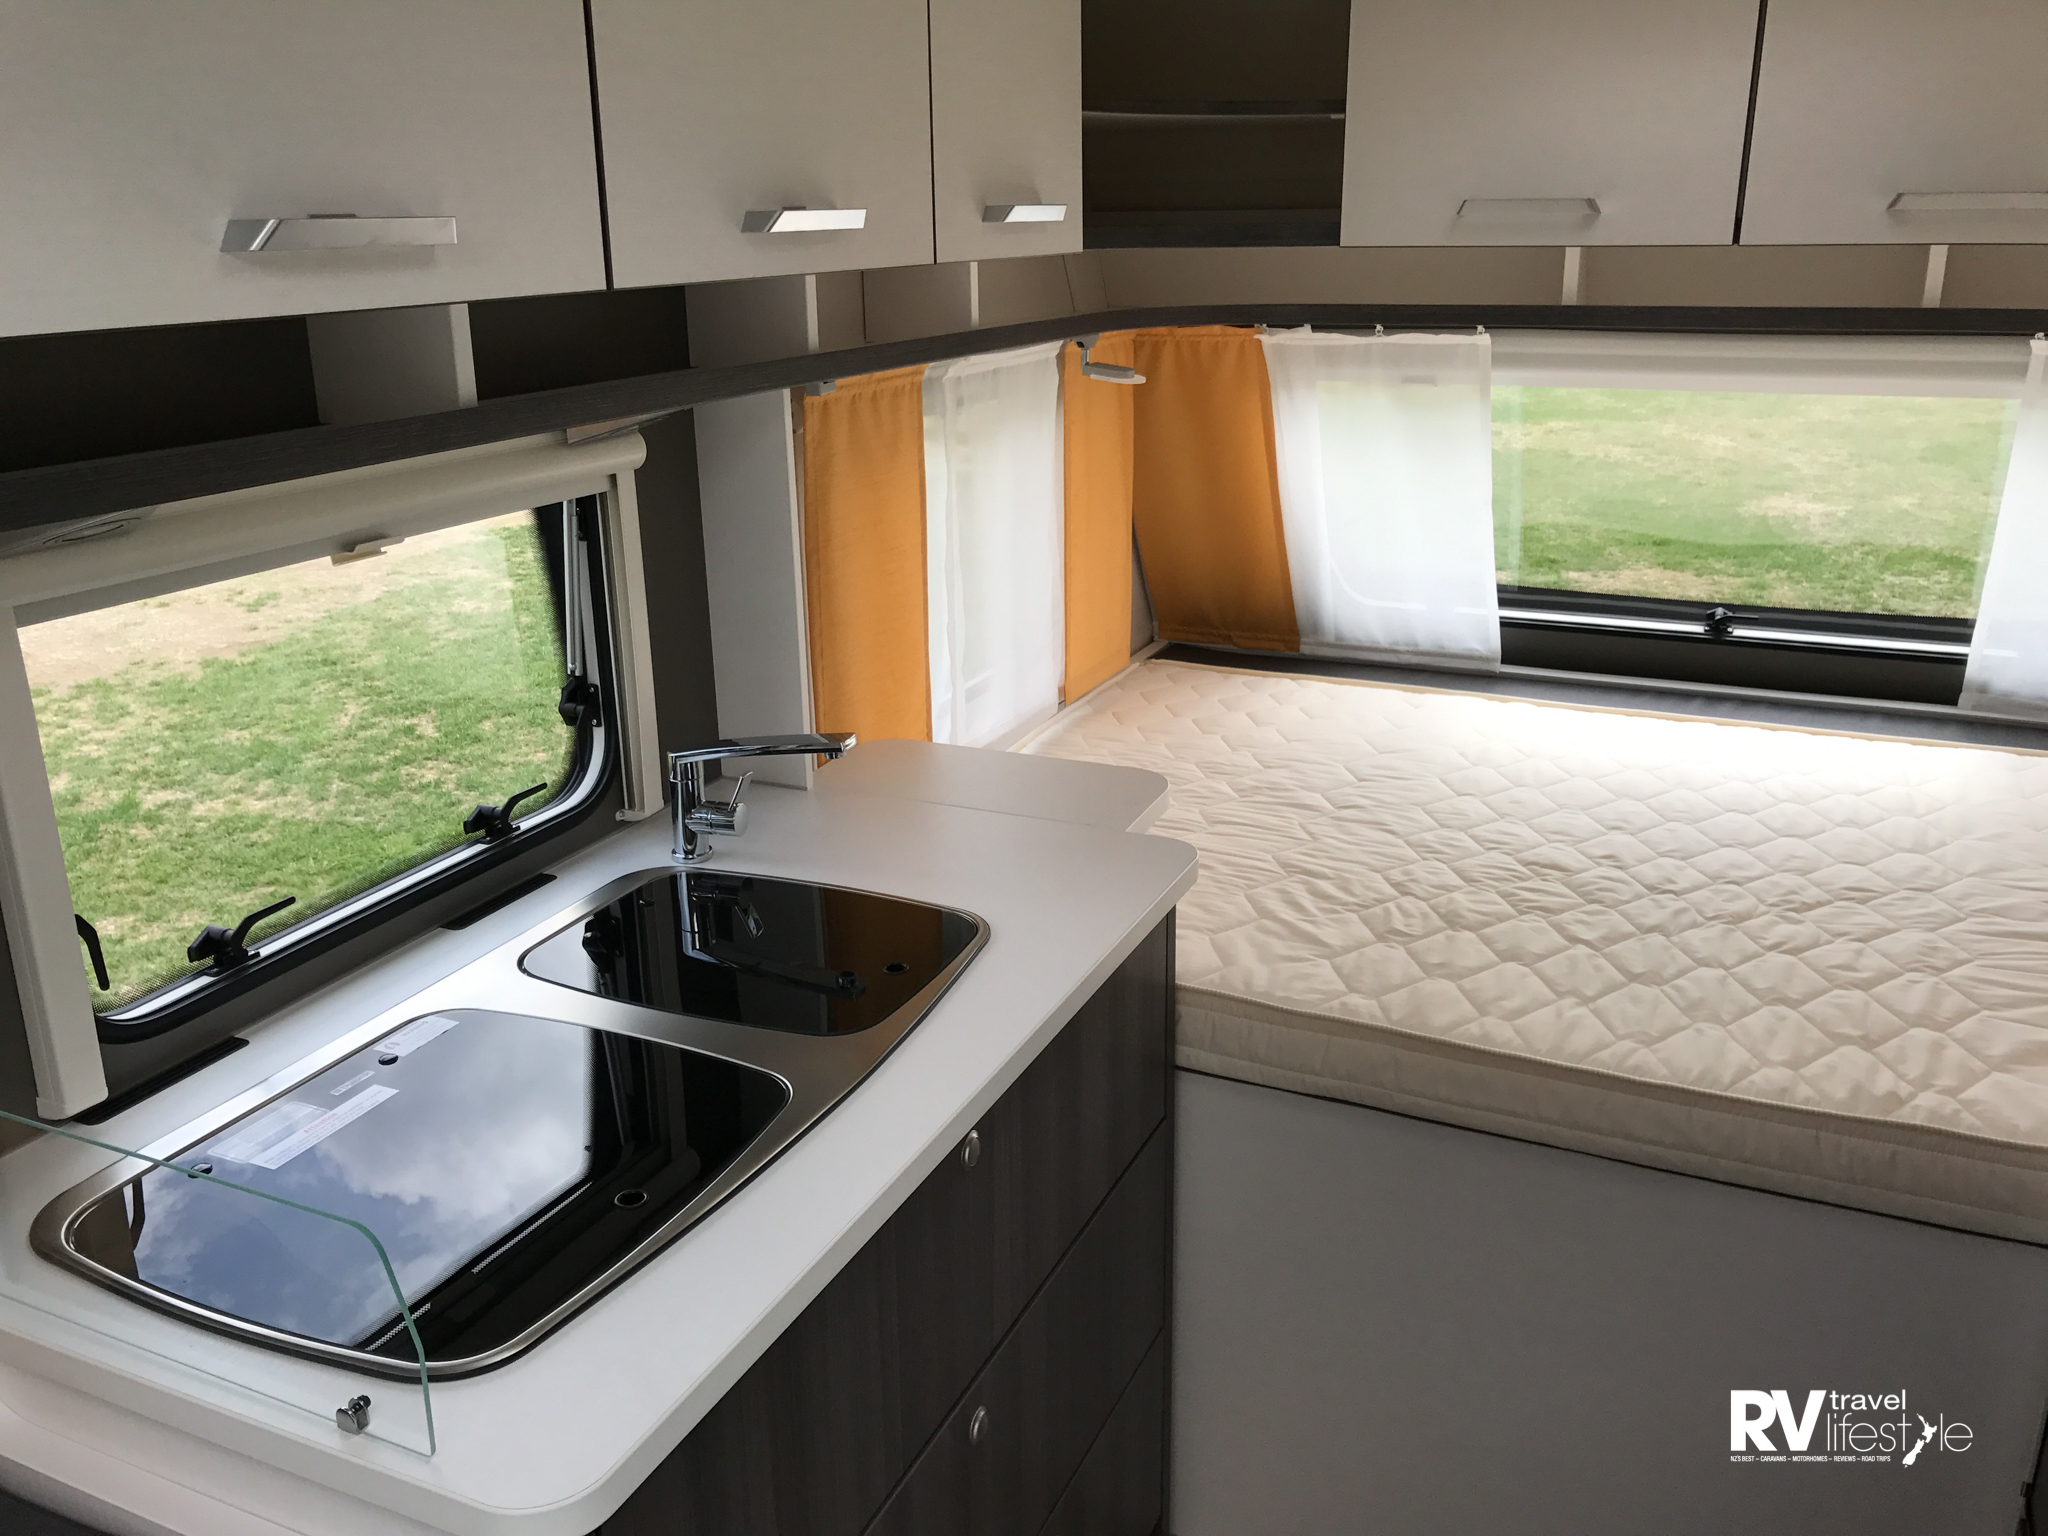 The bathroom is bigger than our motorhome, lots of storage and everything you need right there